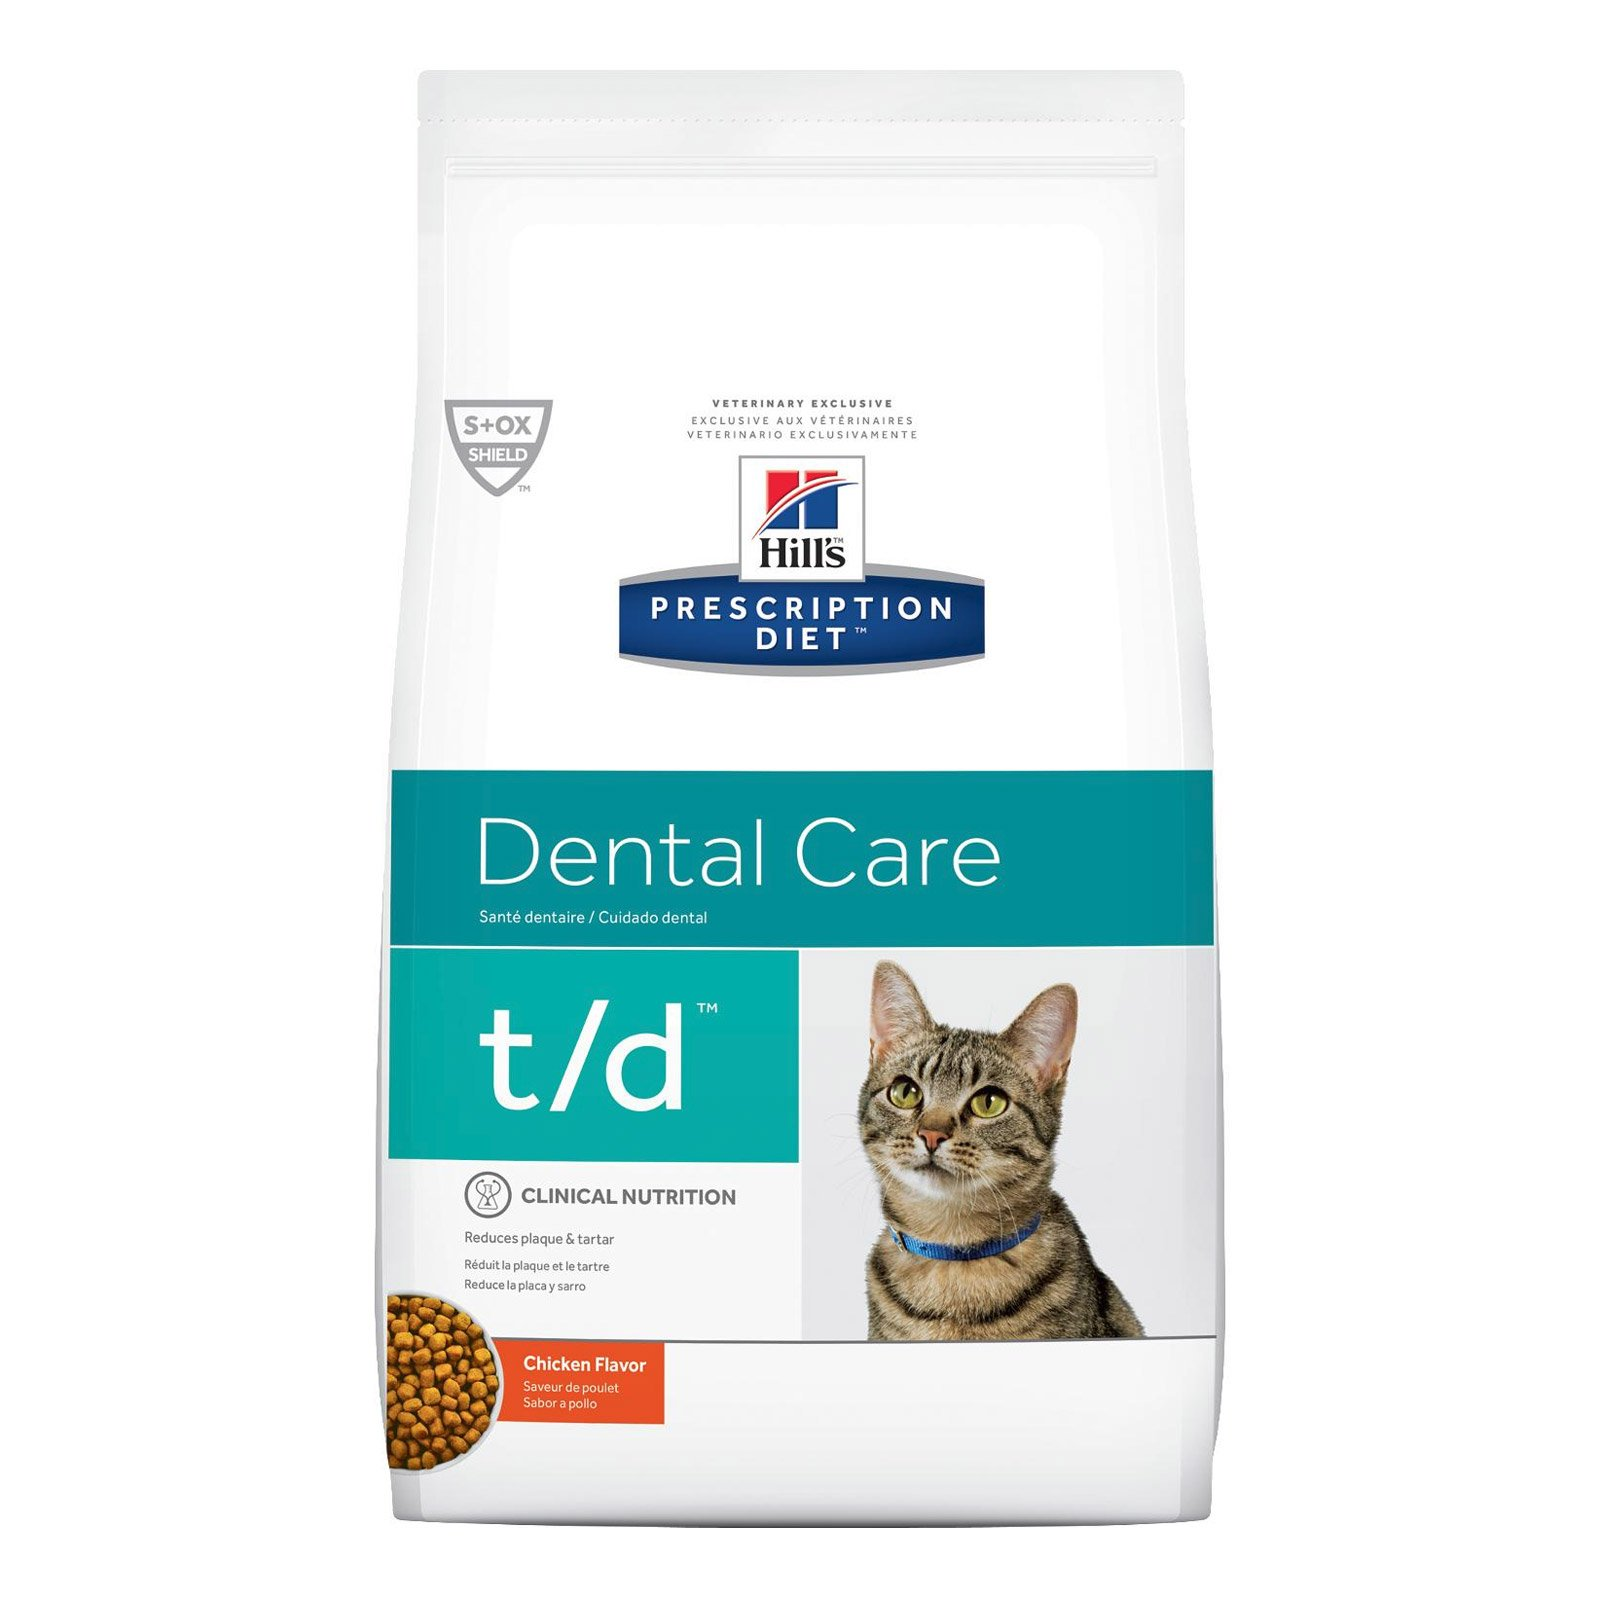 Hill's Prescription Diet t/d Dental Care Dry Cat Food